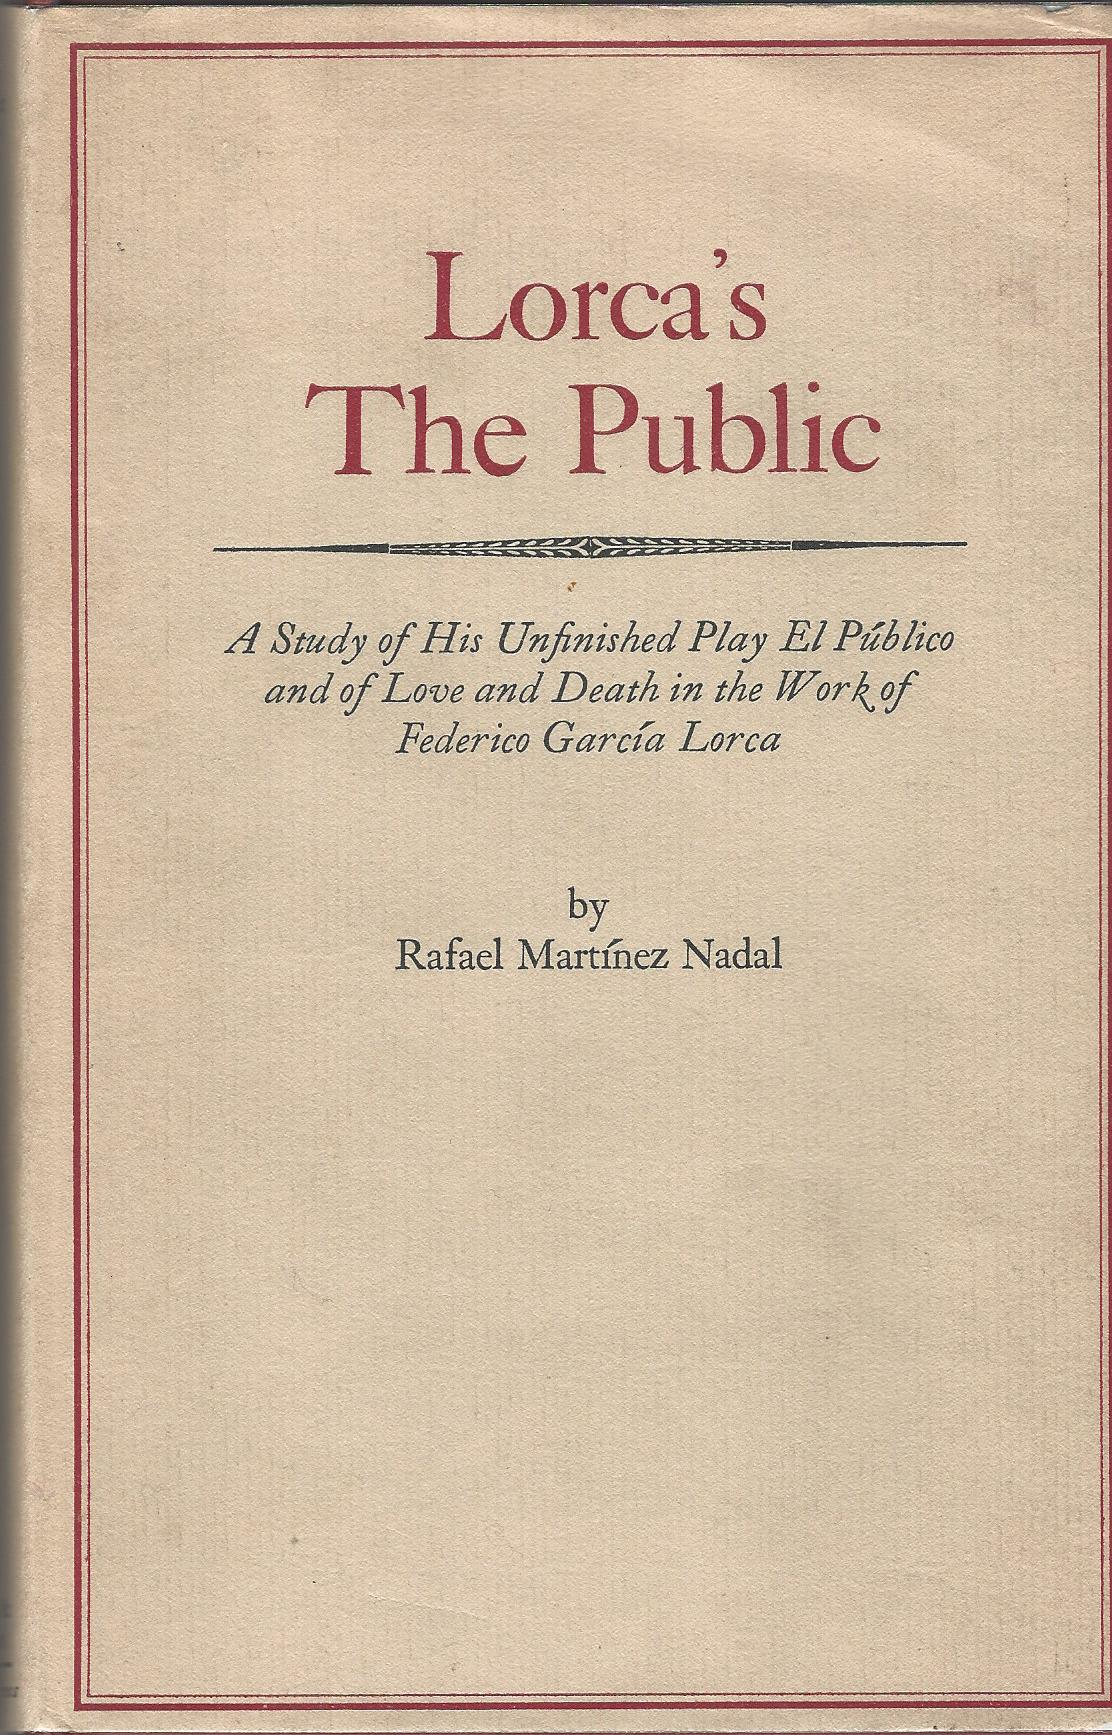 Image for Lorca's the Public: A Study of His Unfinished Play El Publico and of Love and Death in the Work of Federico Garcia Lorca.